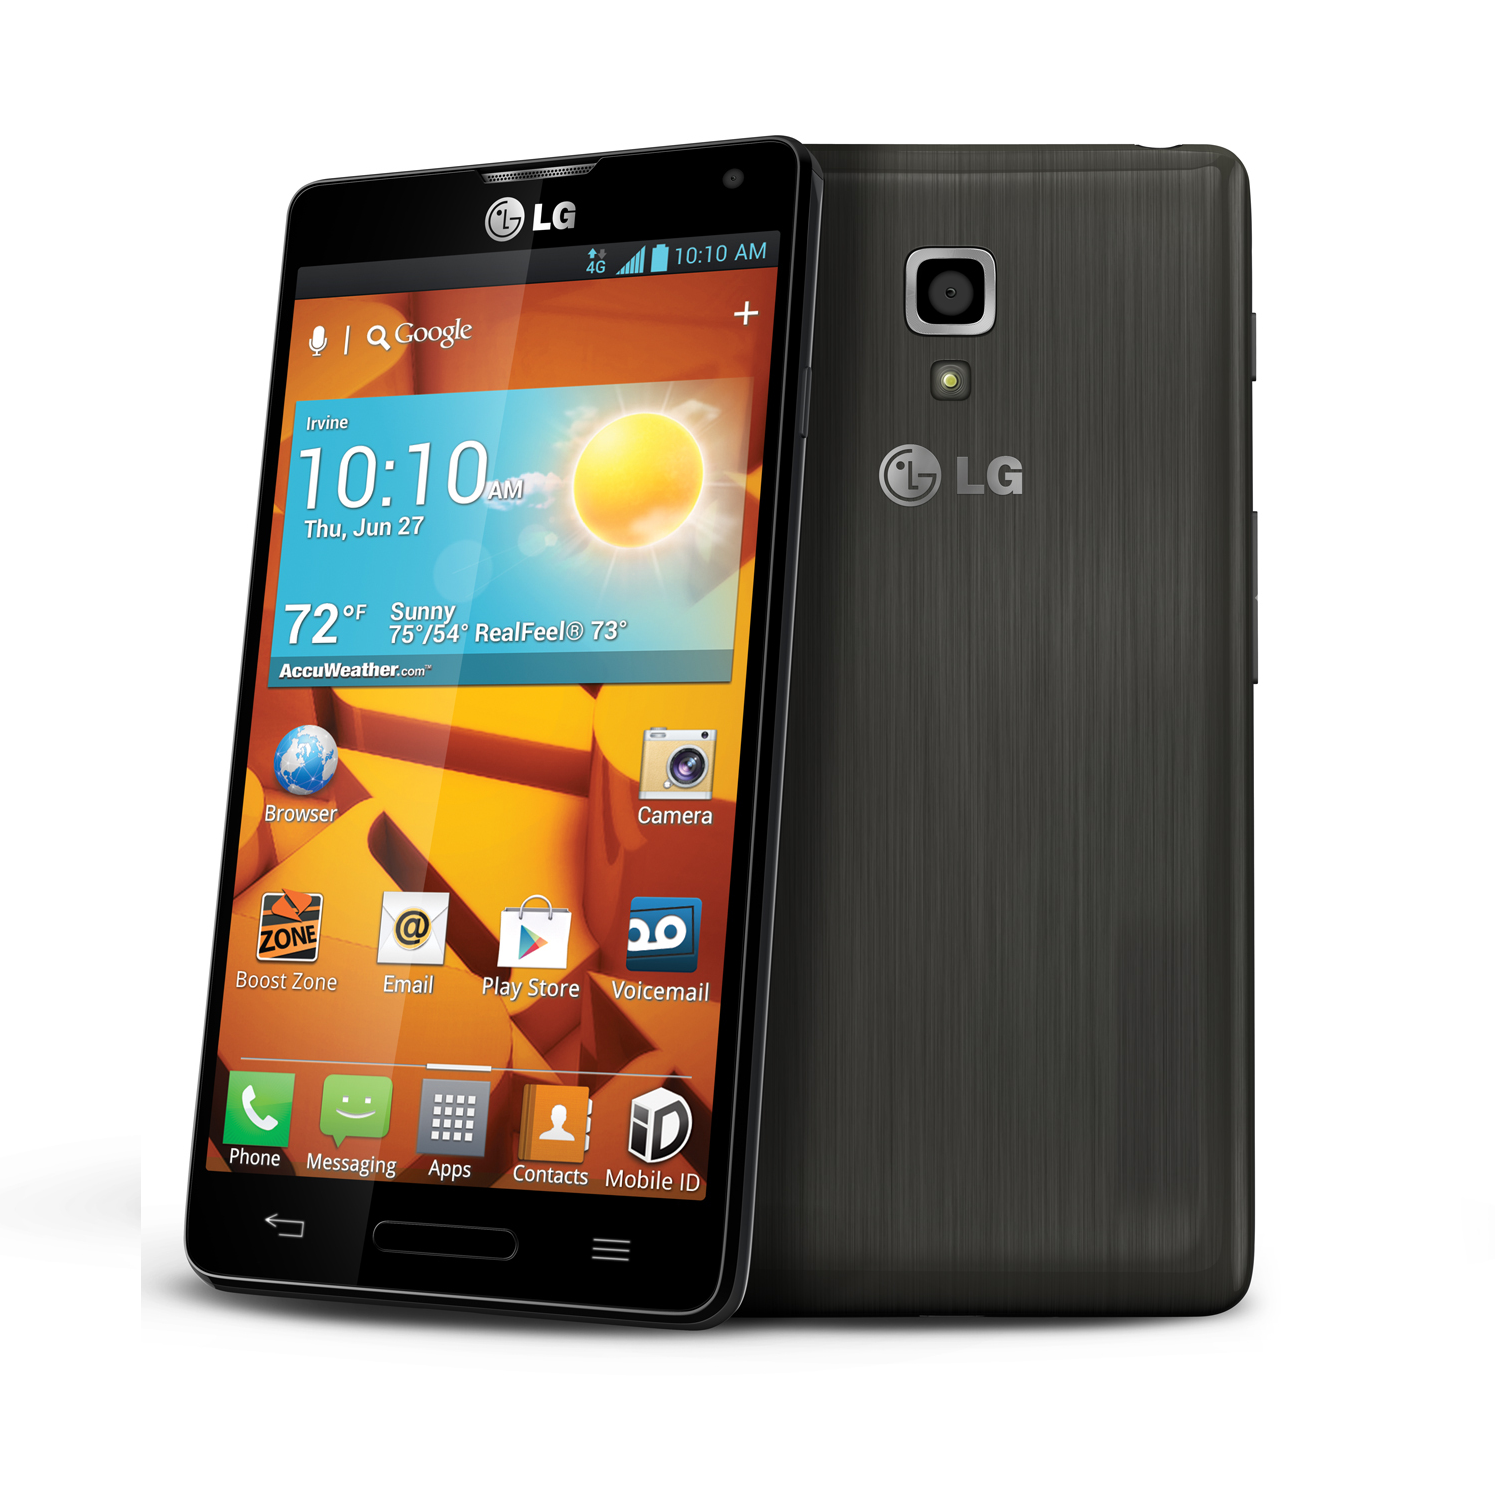 Phone Lg 4g Android Phones lg optimus f7 lg870 wifi gps 4g lte android phone boost mobile mobile